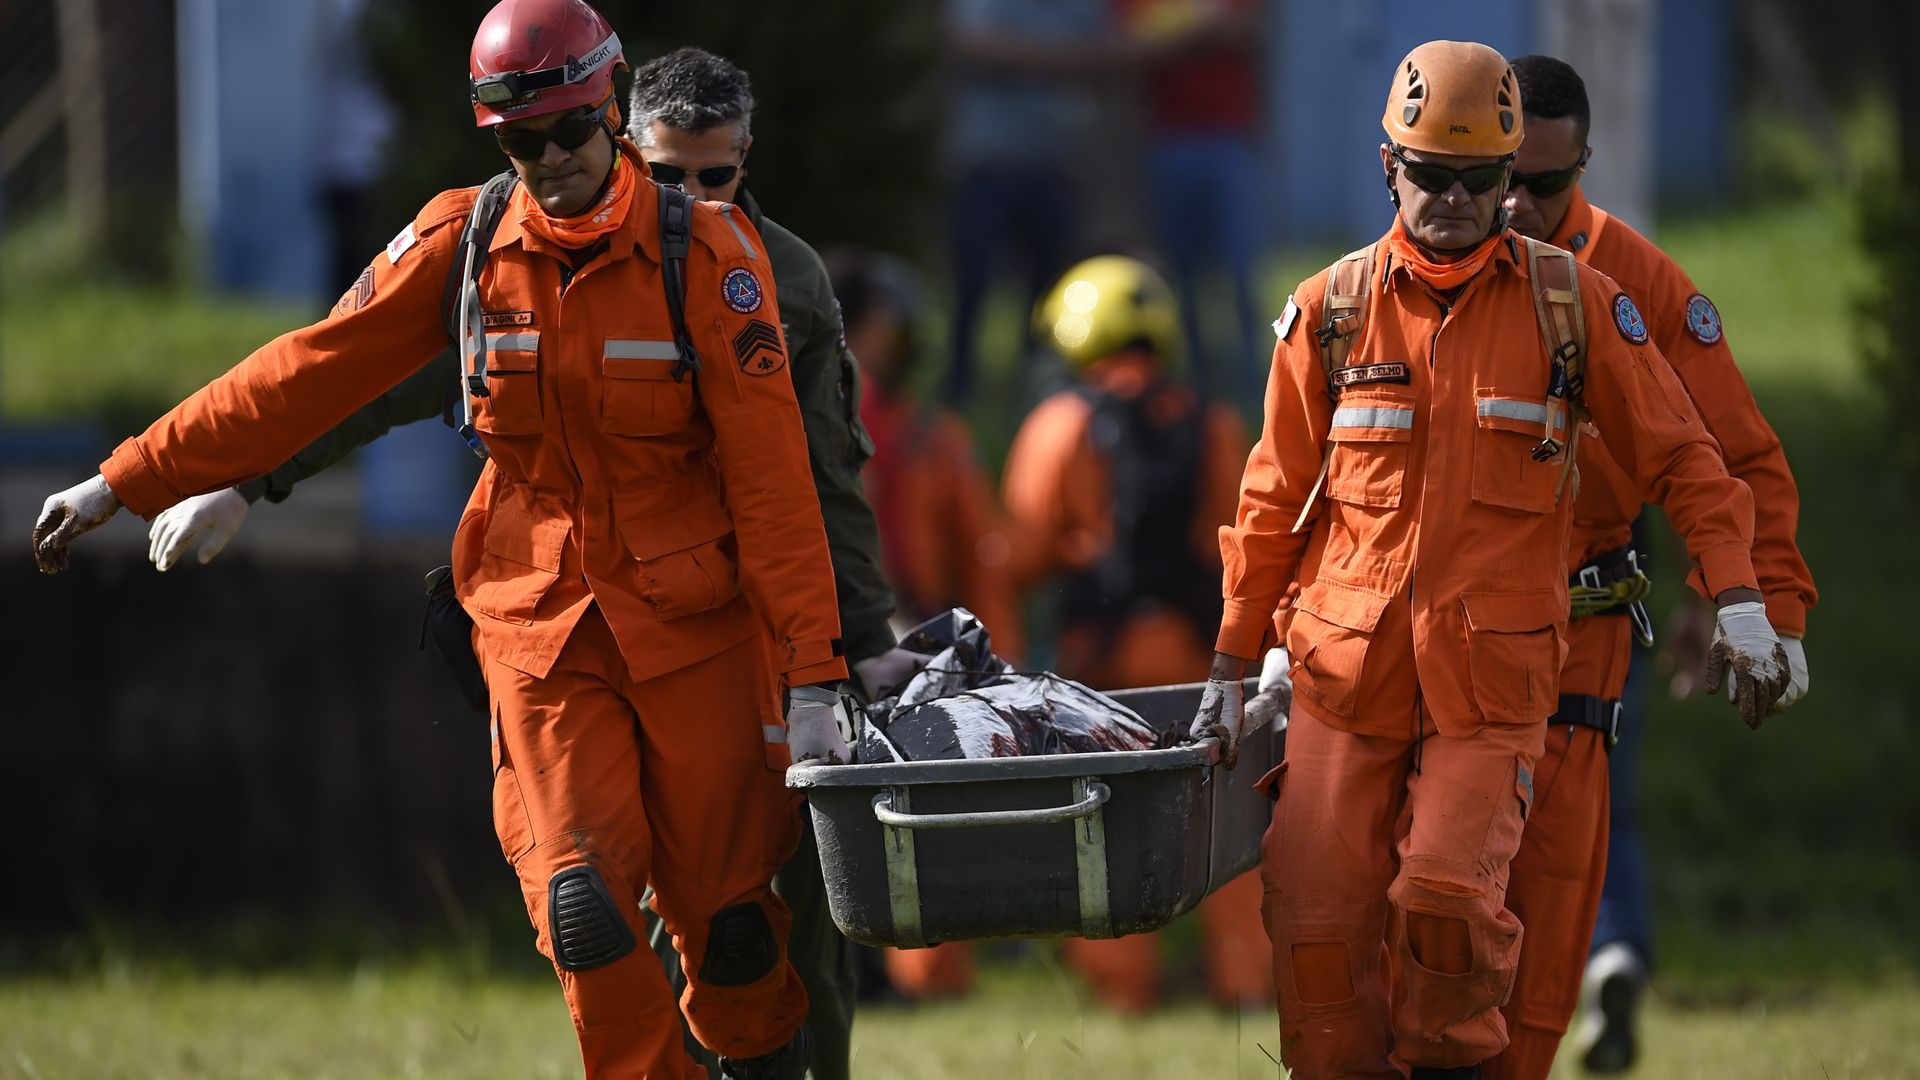 Rescue in Brazil after iron ore mine collapsed